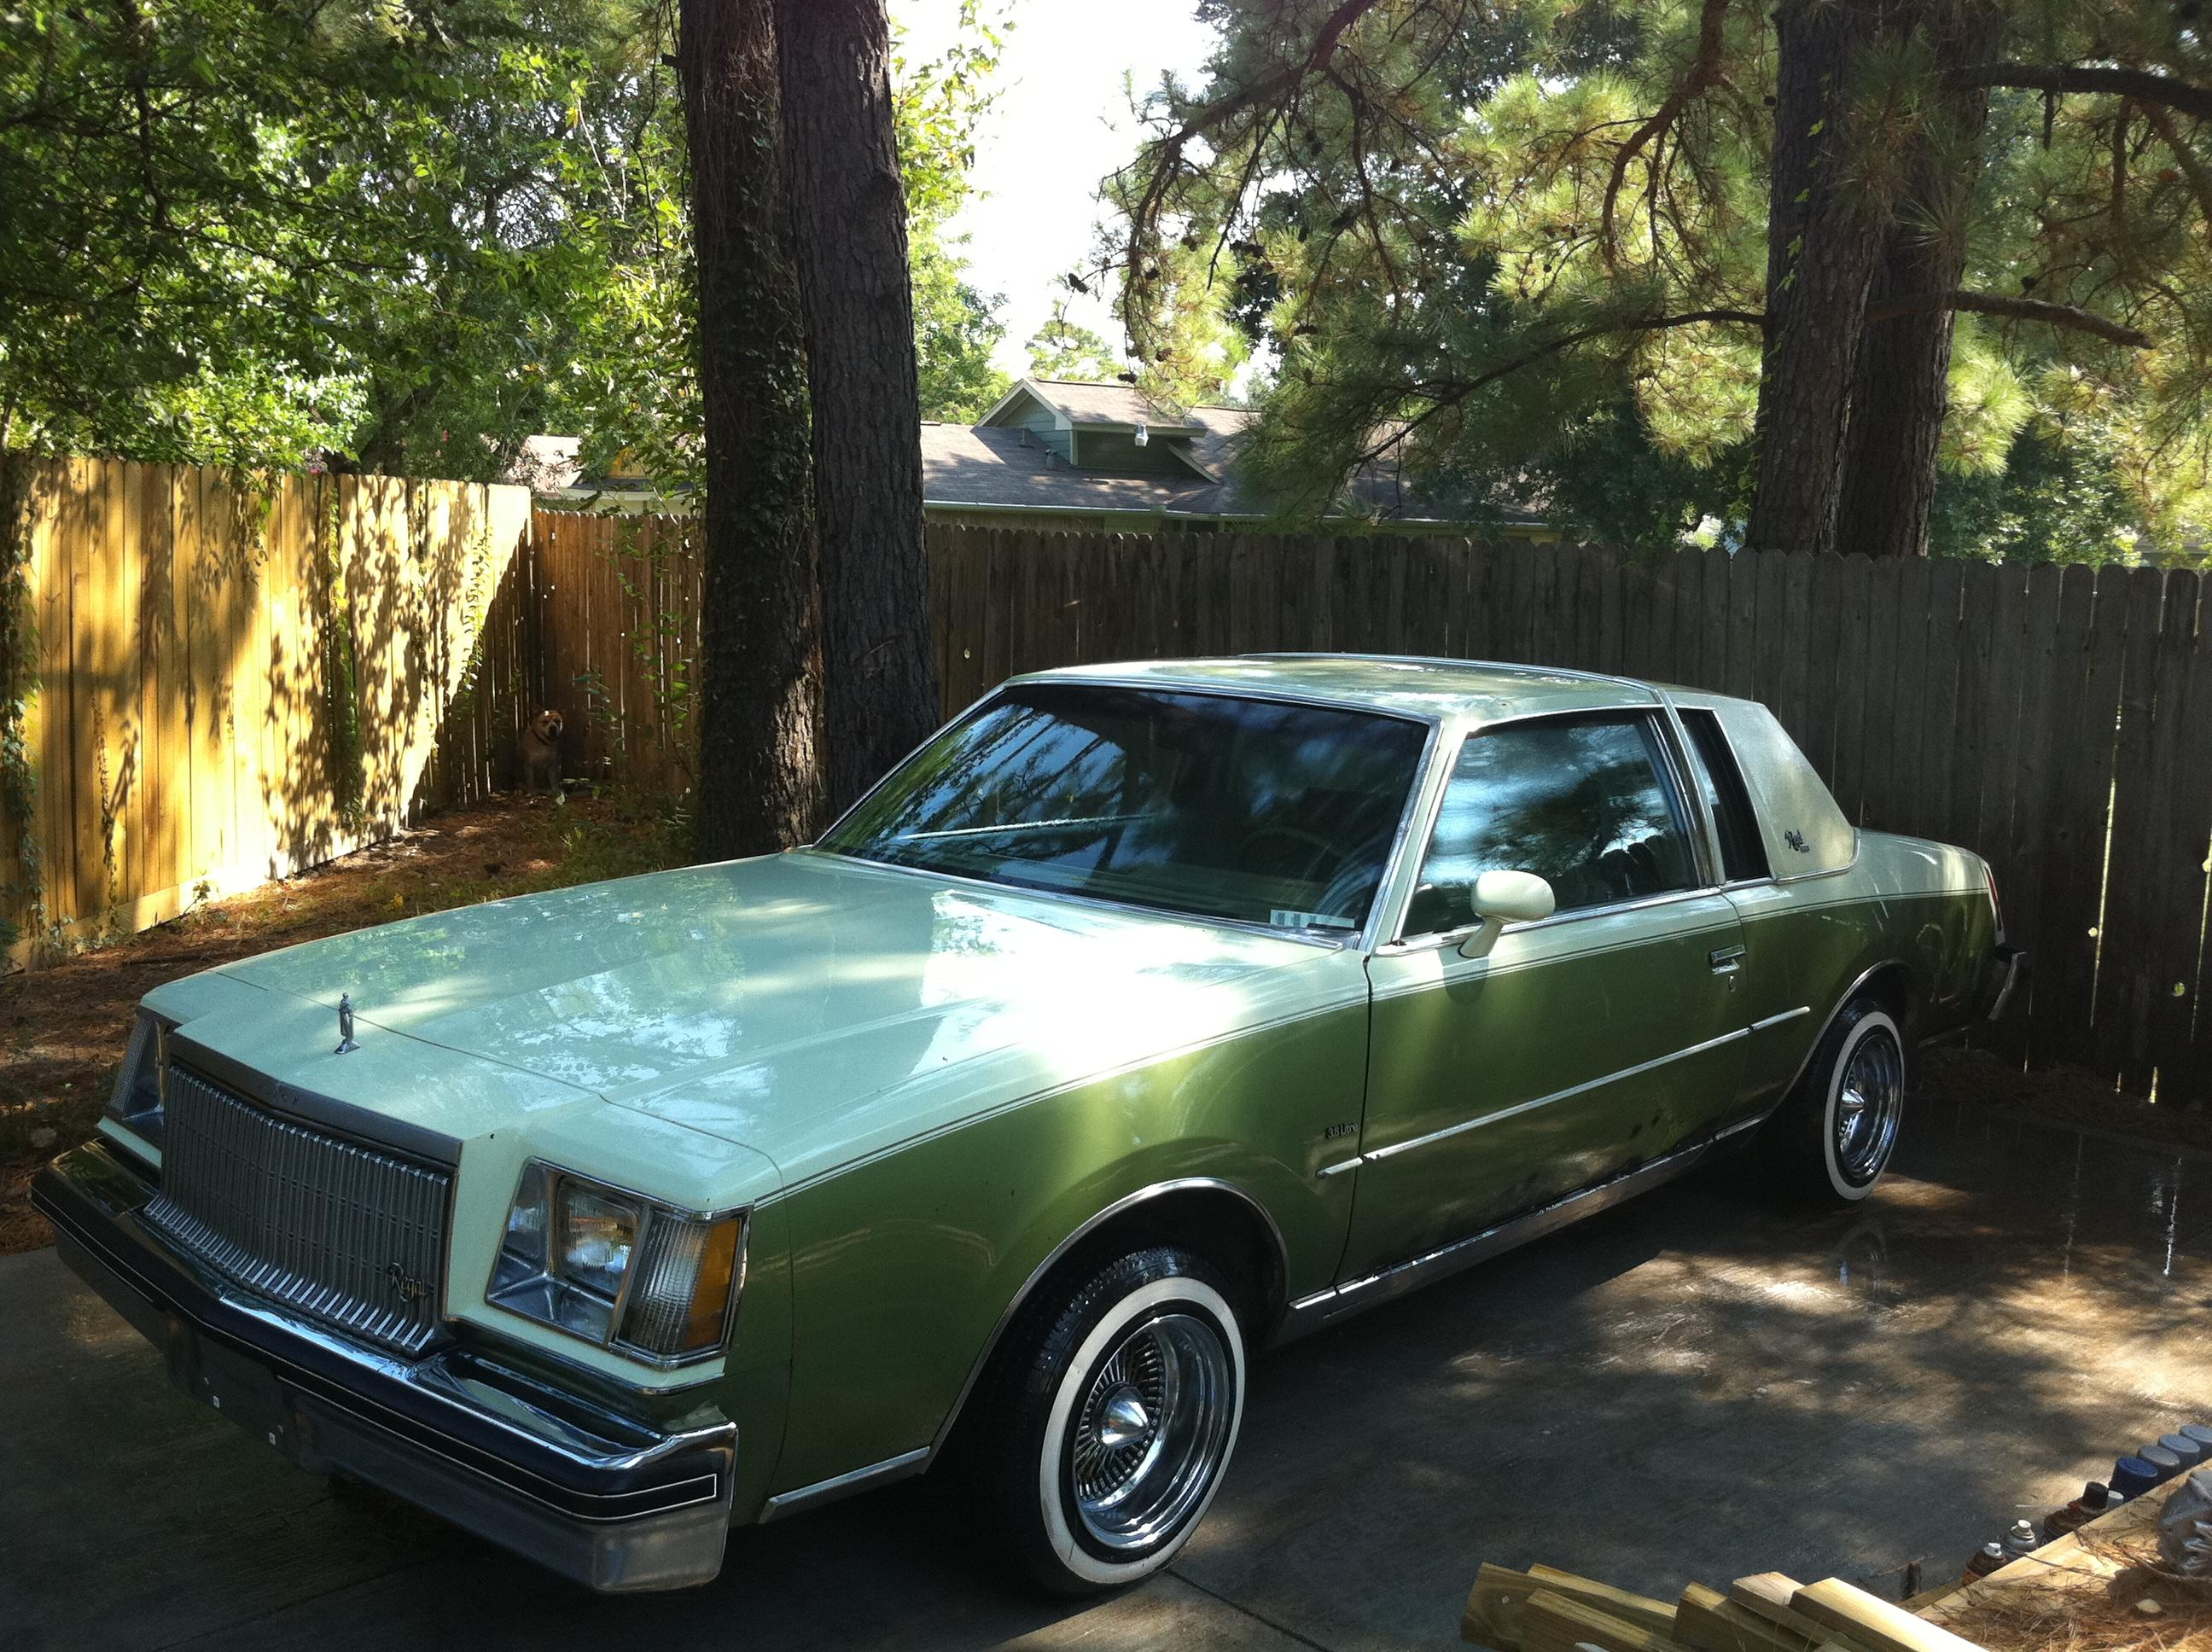 1979 buick regal view all 1979 buick regal at cardomain. Black Bedroom Furniture Sets. Home Design Ideas